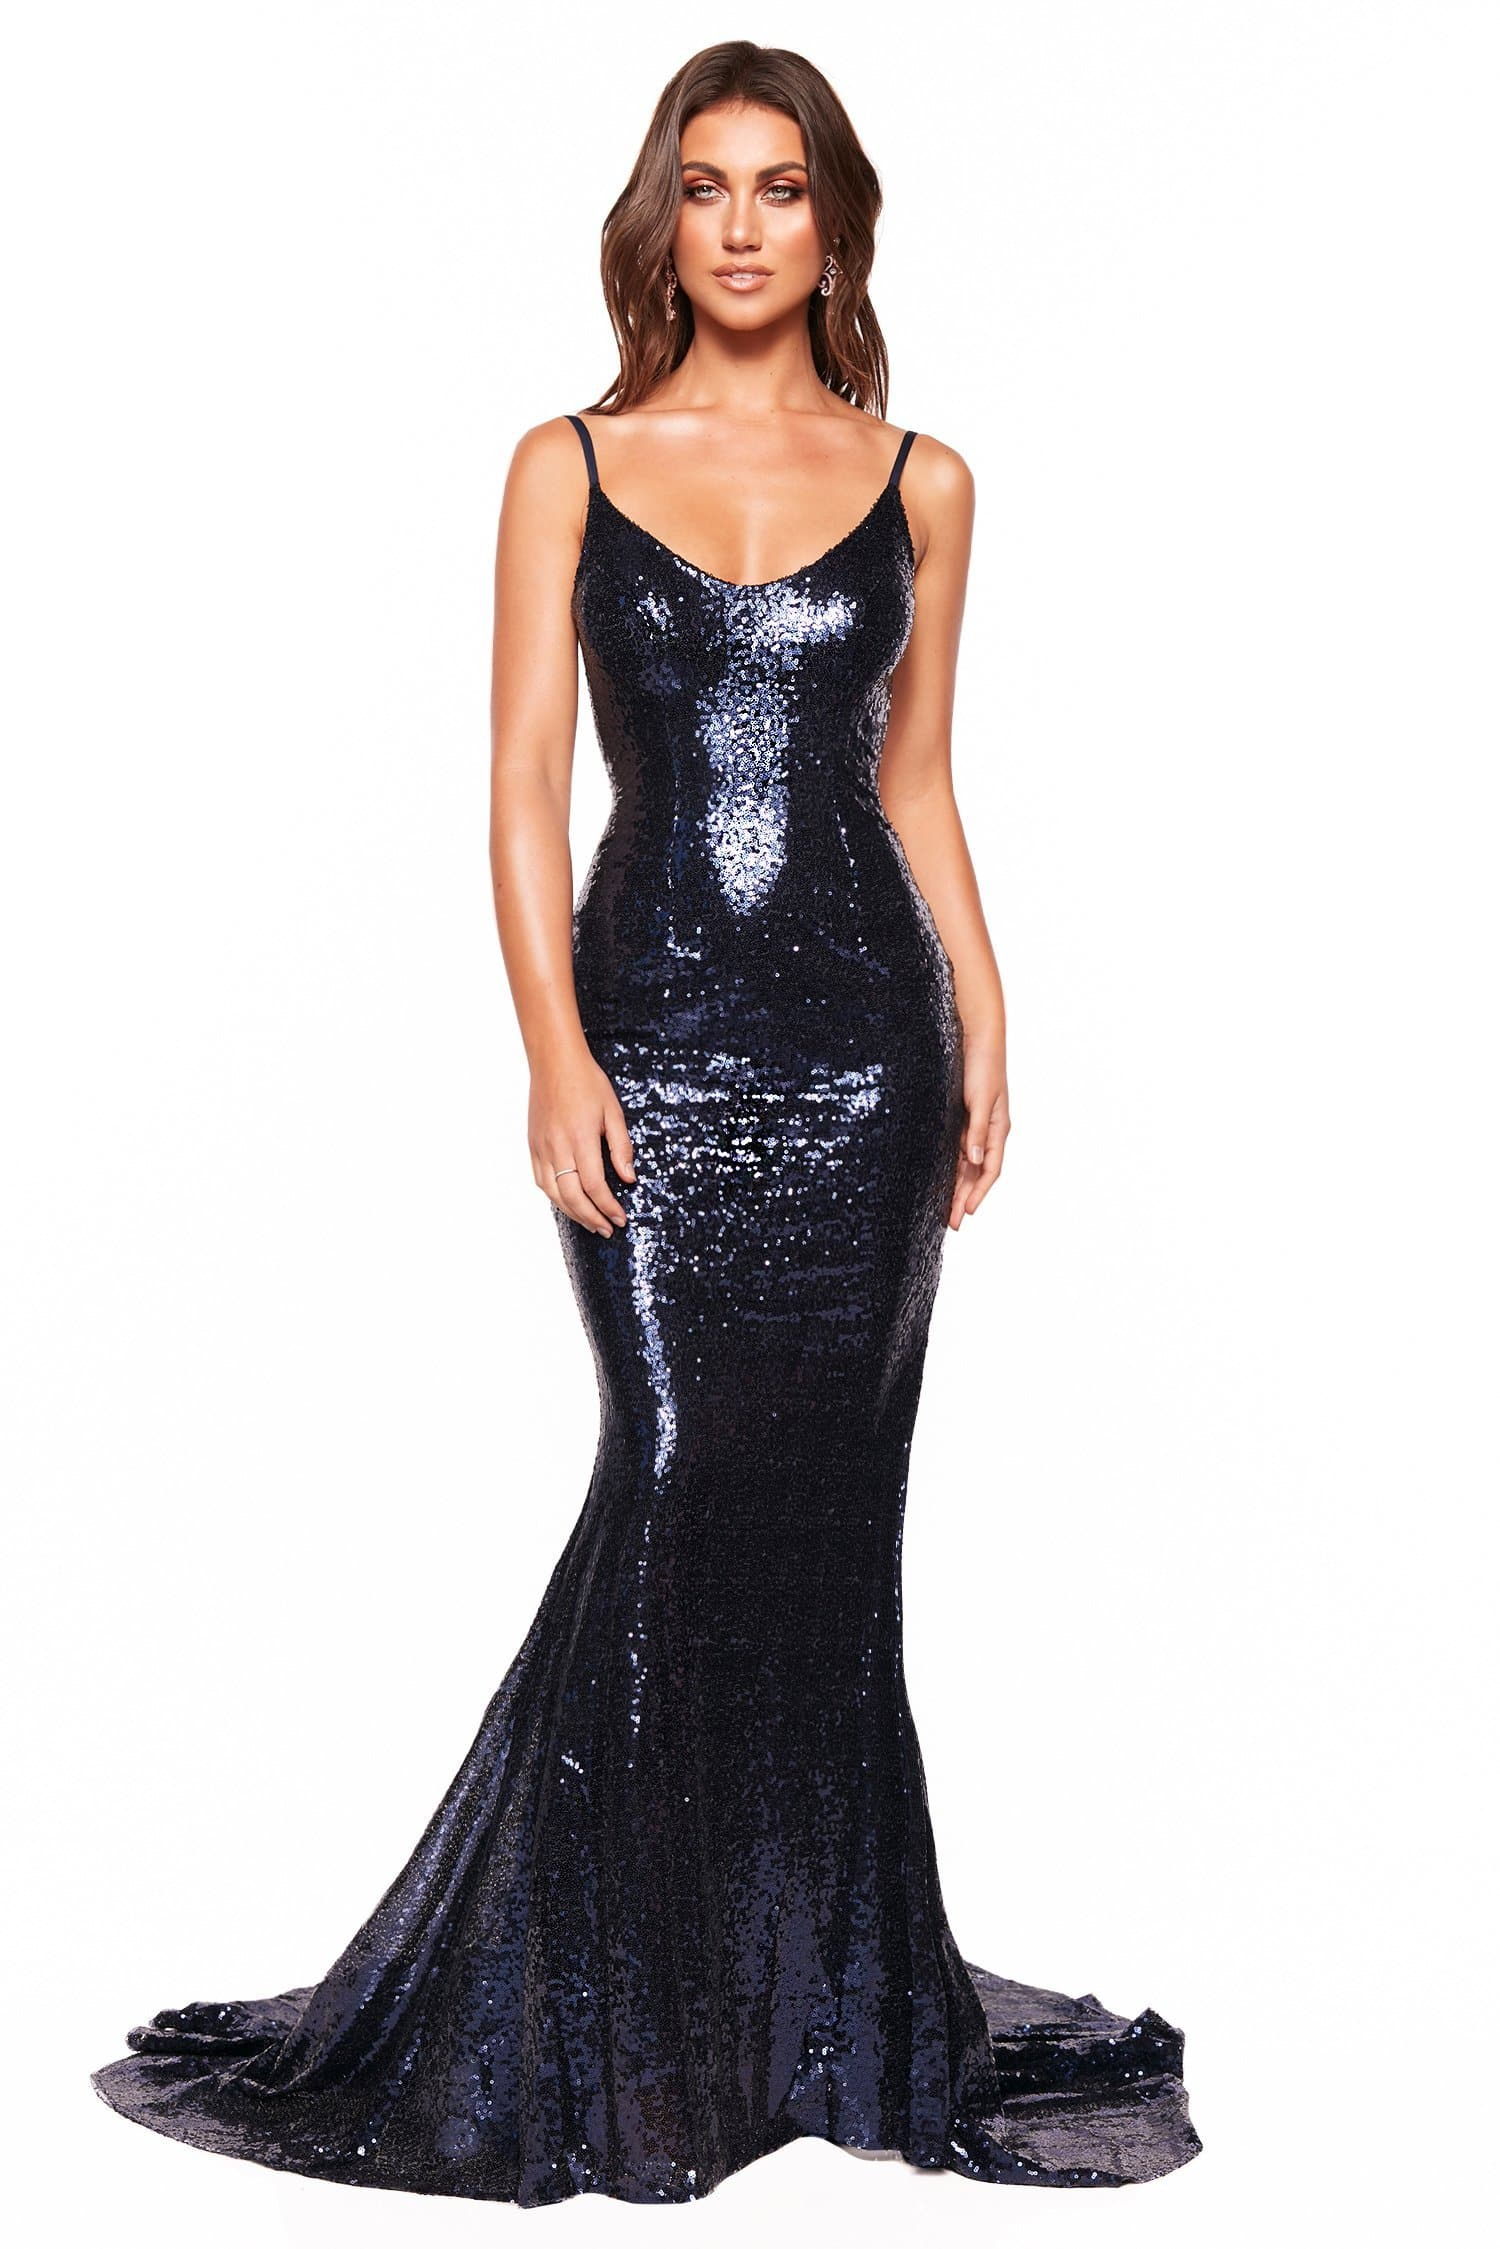 A&N Luxe Zahara - Navy Low Back Sequin Gown with Scoop Neck